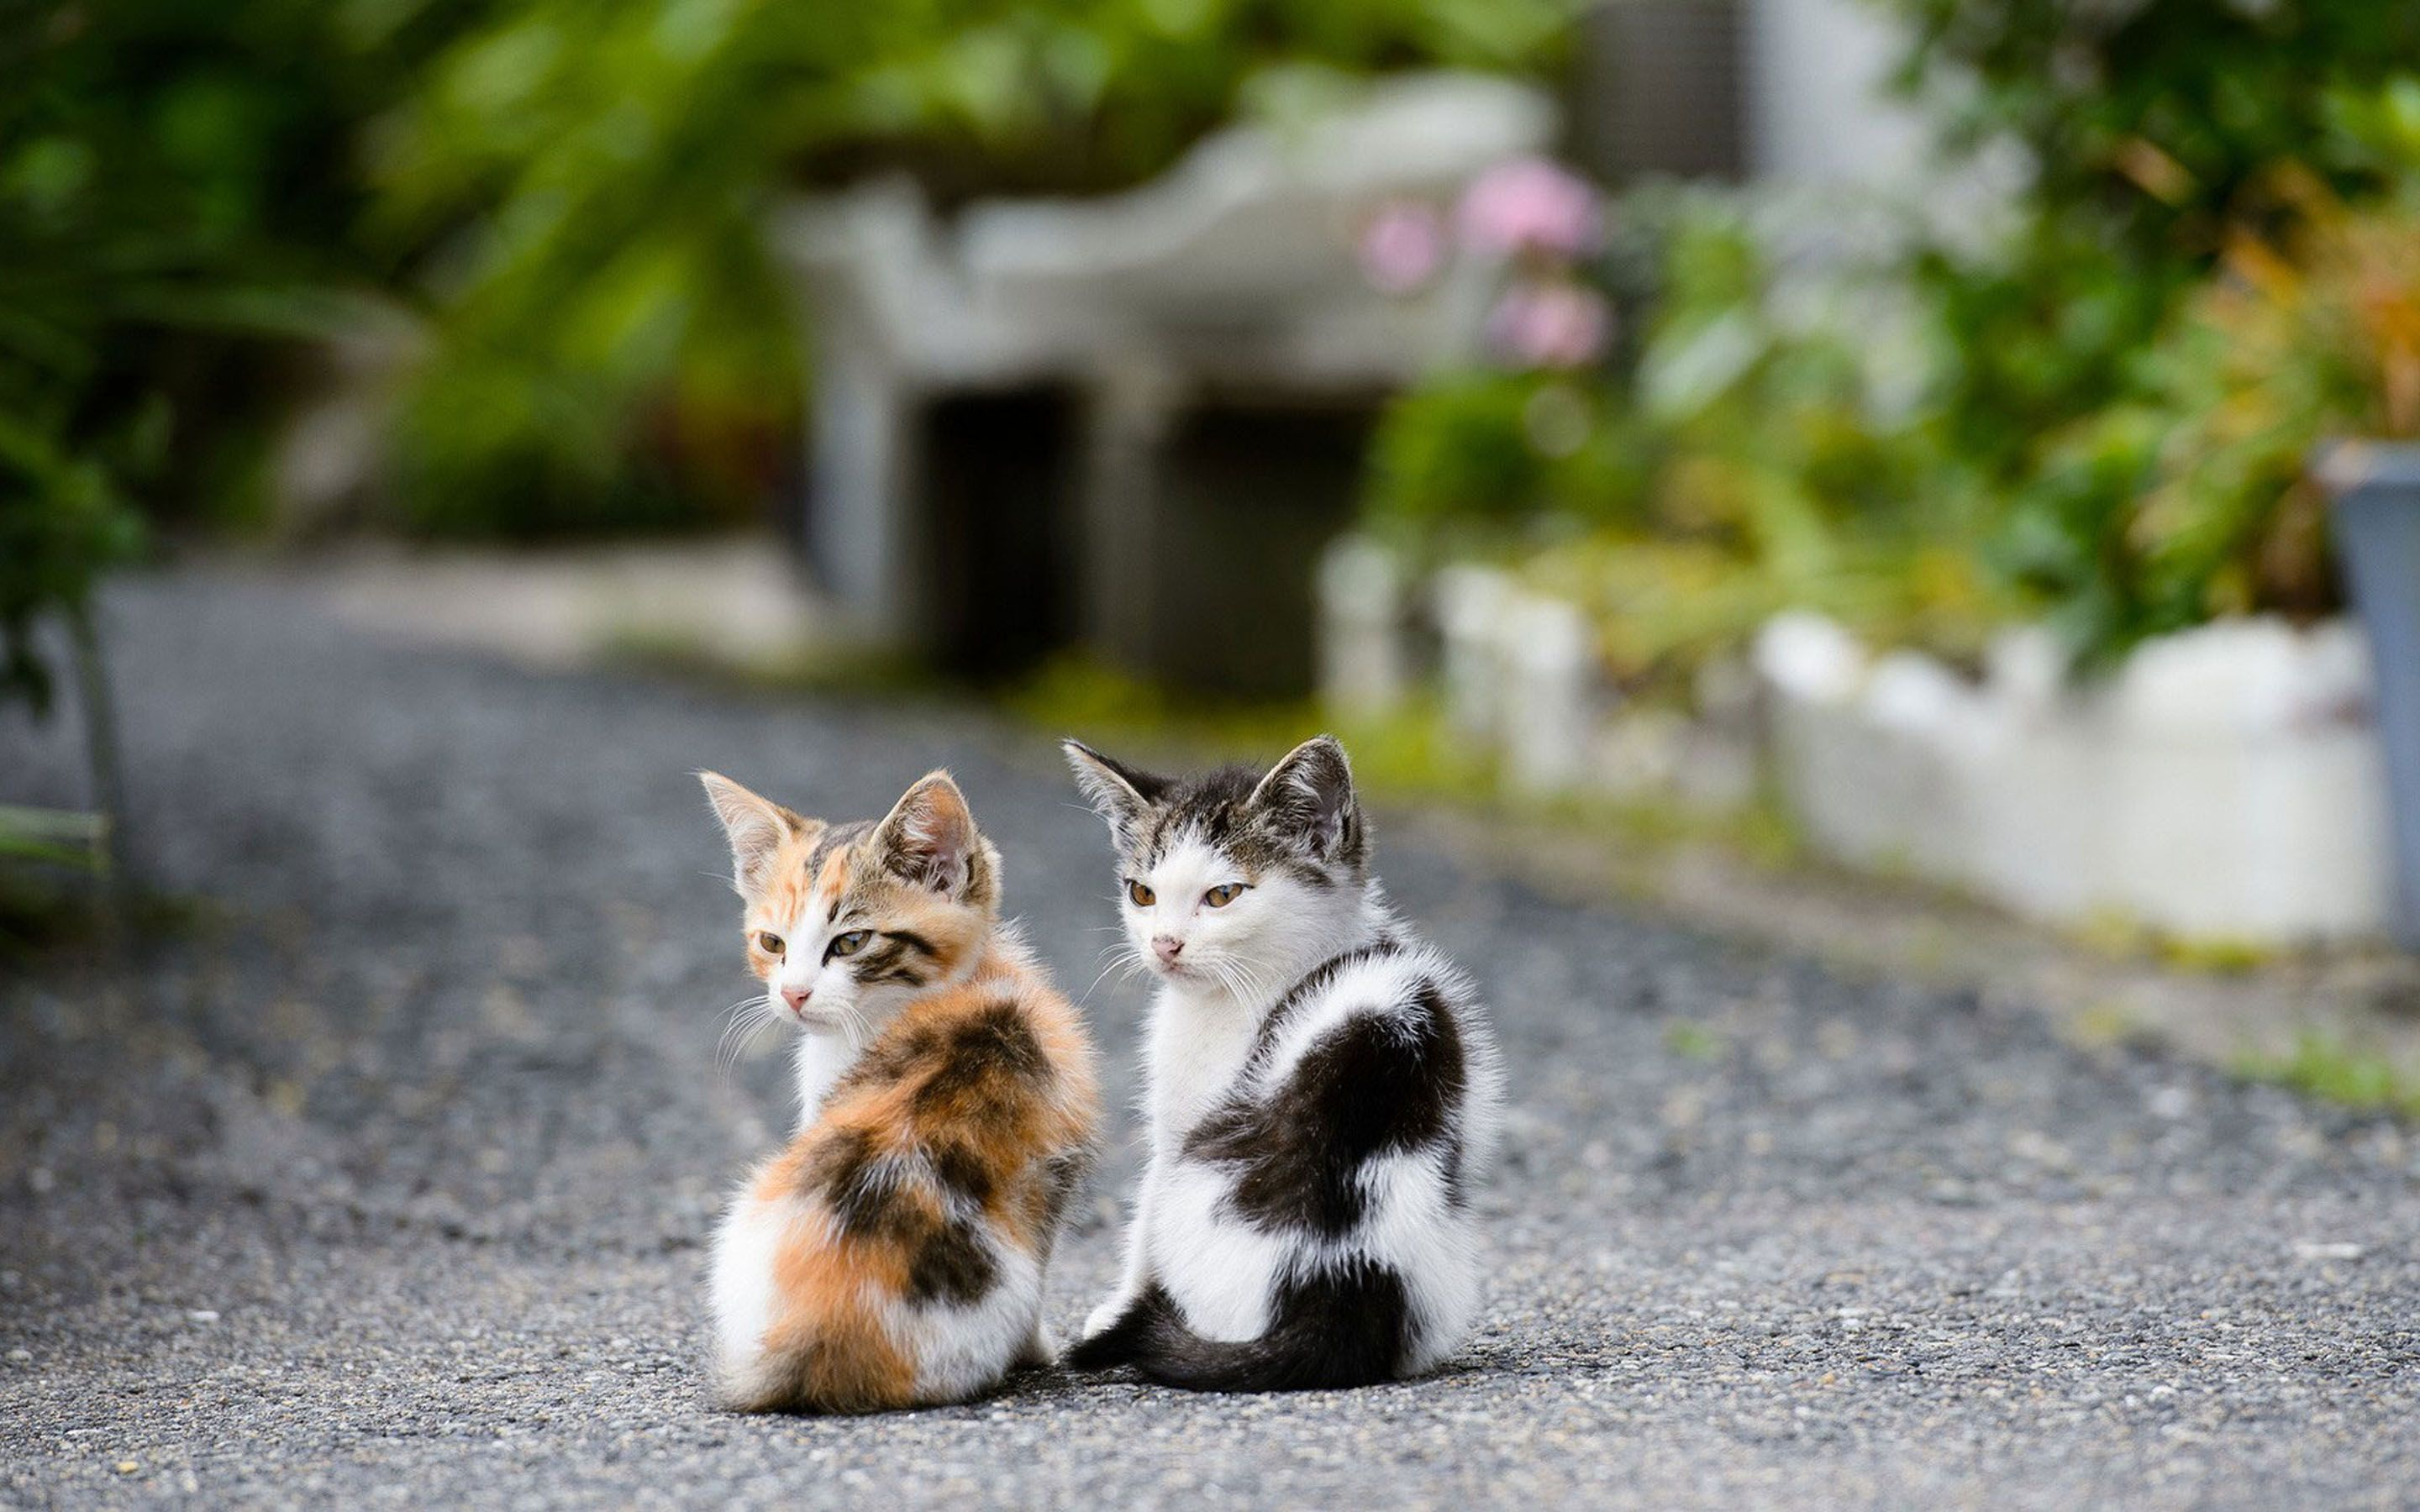 Apple Iphone Wallpaper In 2020 Kittens Cutest Cats Cat Day